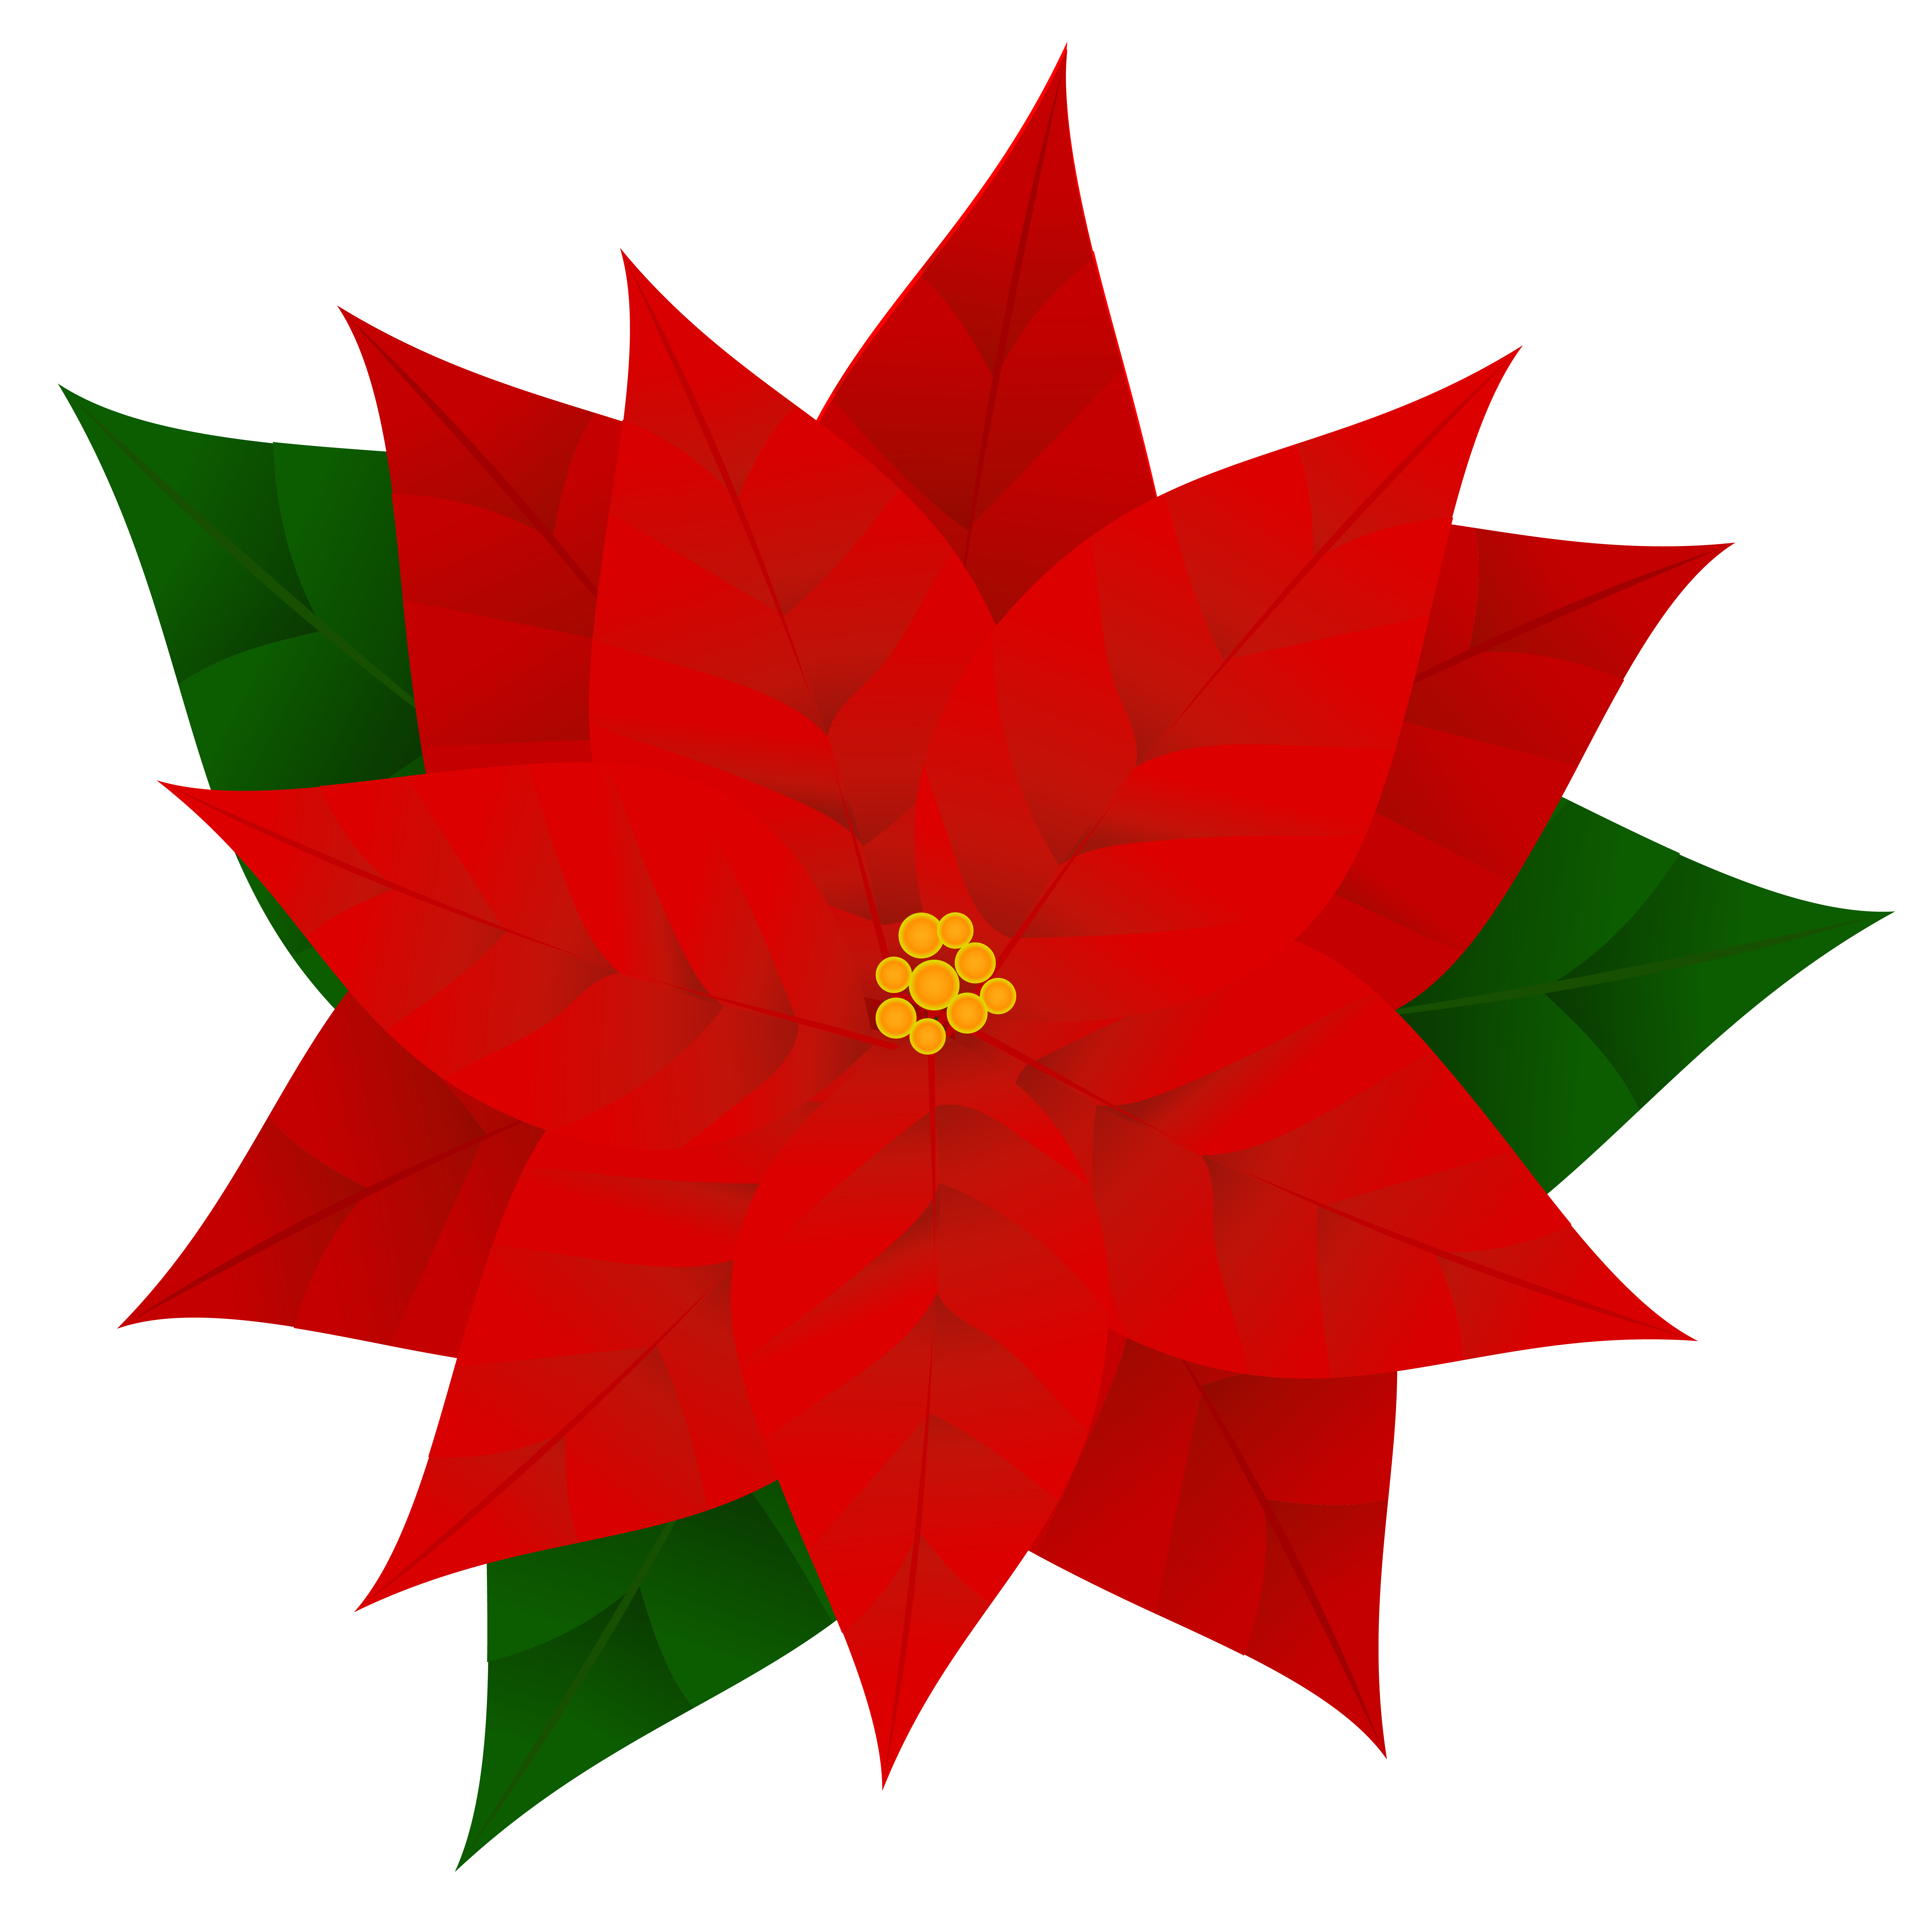 Png image gallery yopriceville. Free poinsettia clipart images